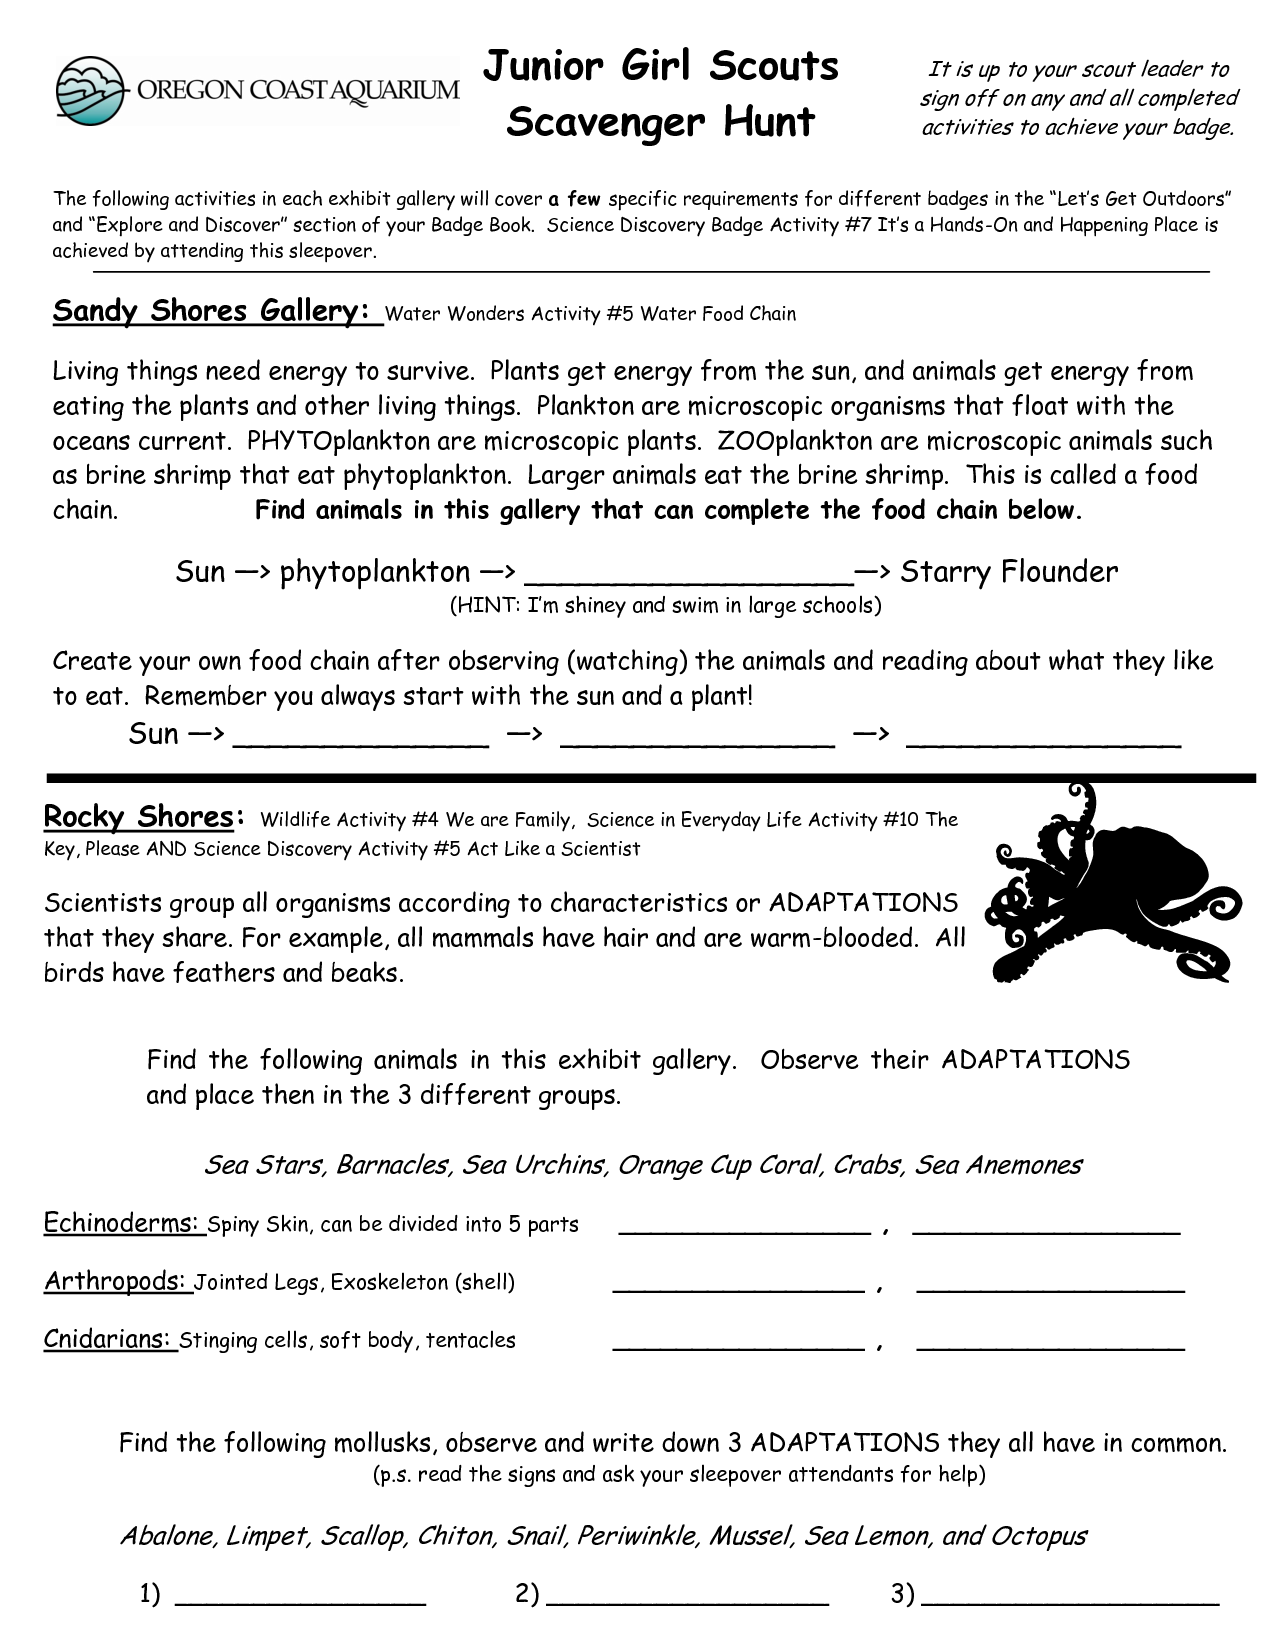 worksheet Snow Sports Merit Badge Worksheet junior girl scout badge worksheets scouts scavenger hunt